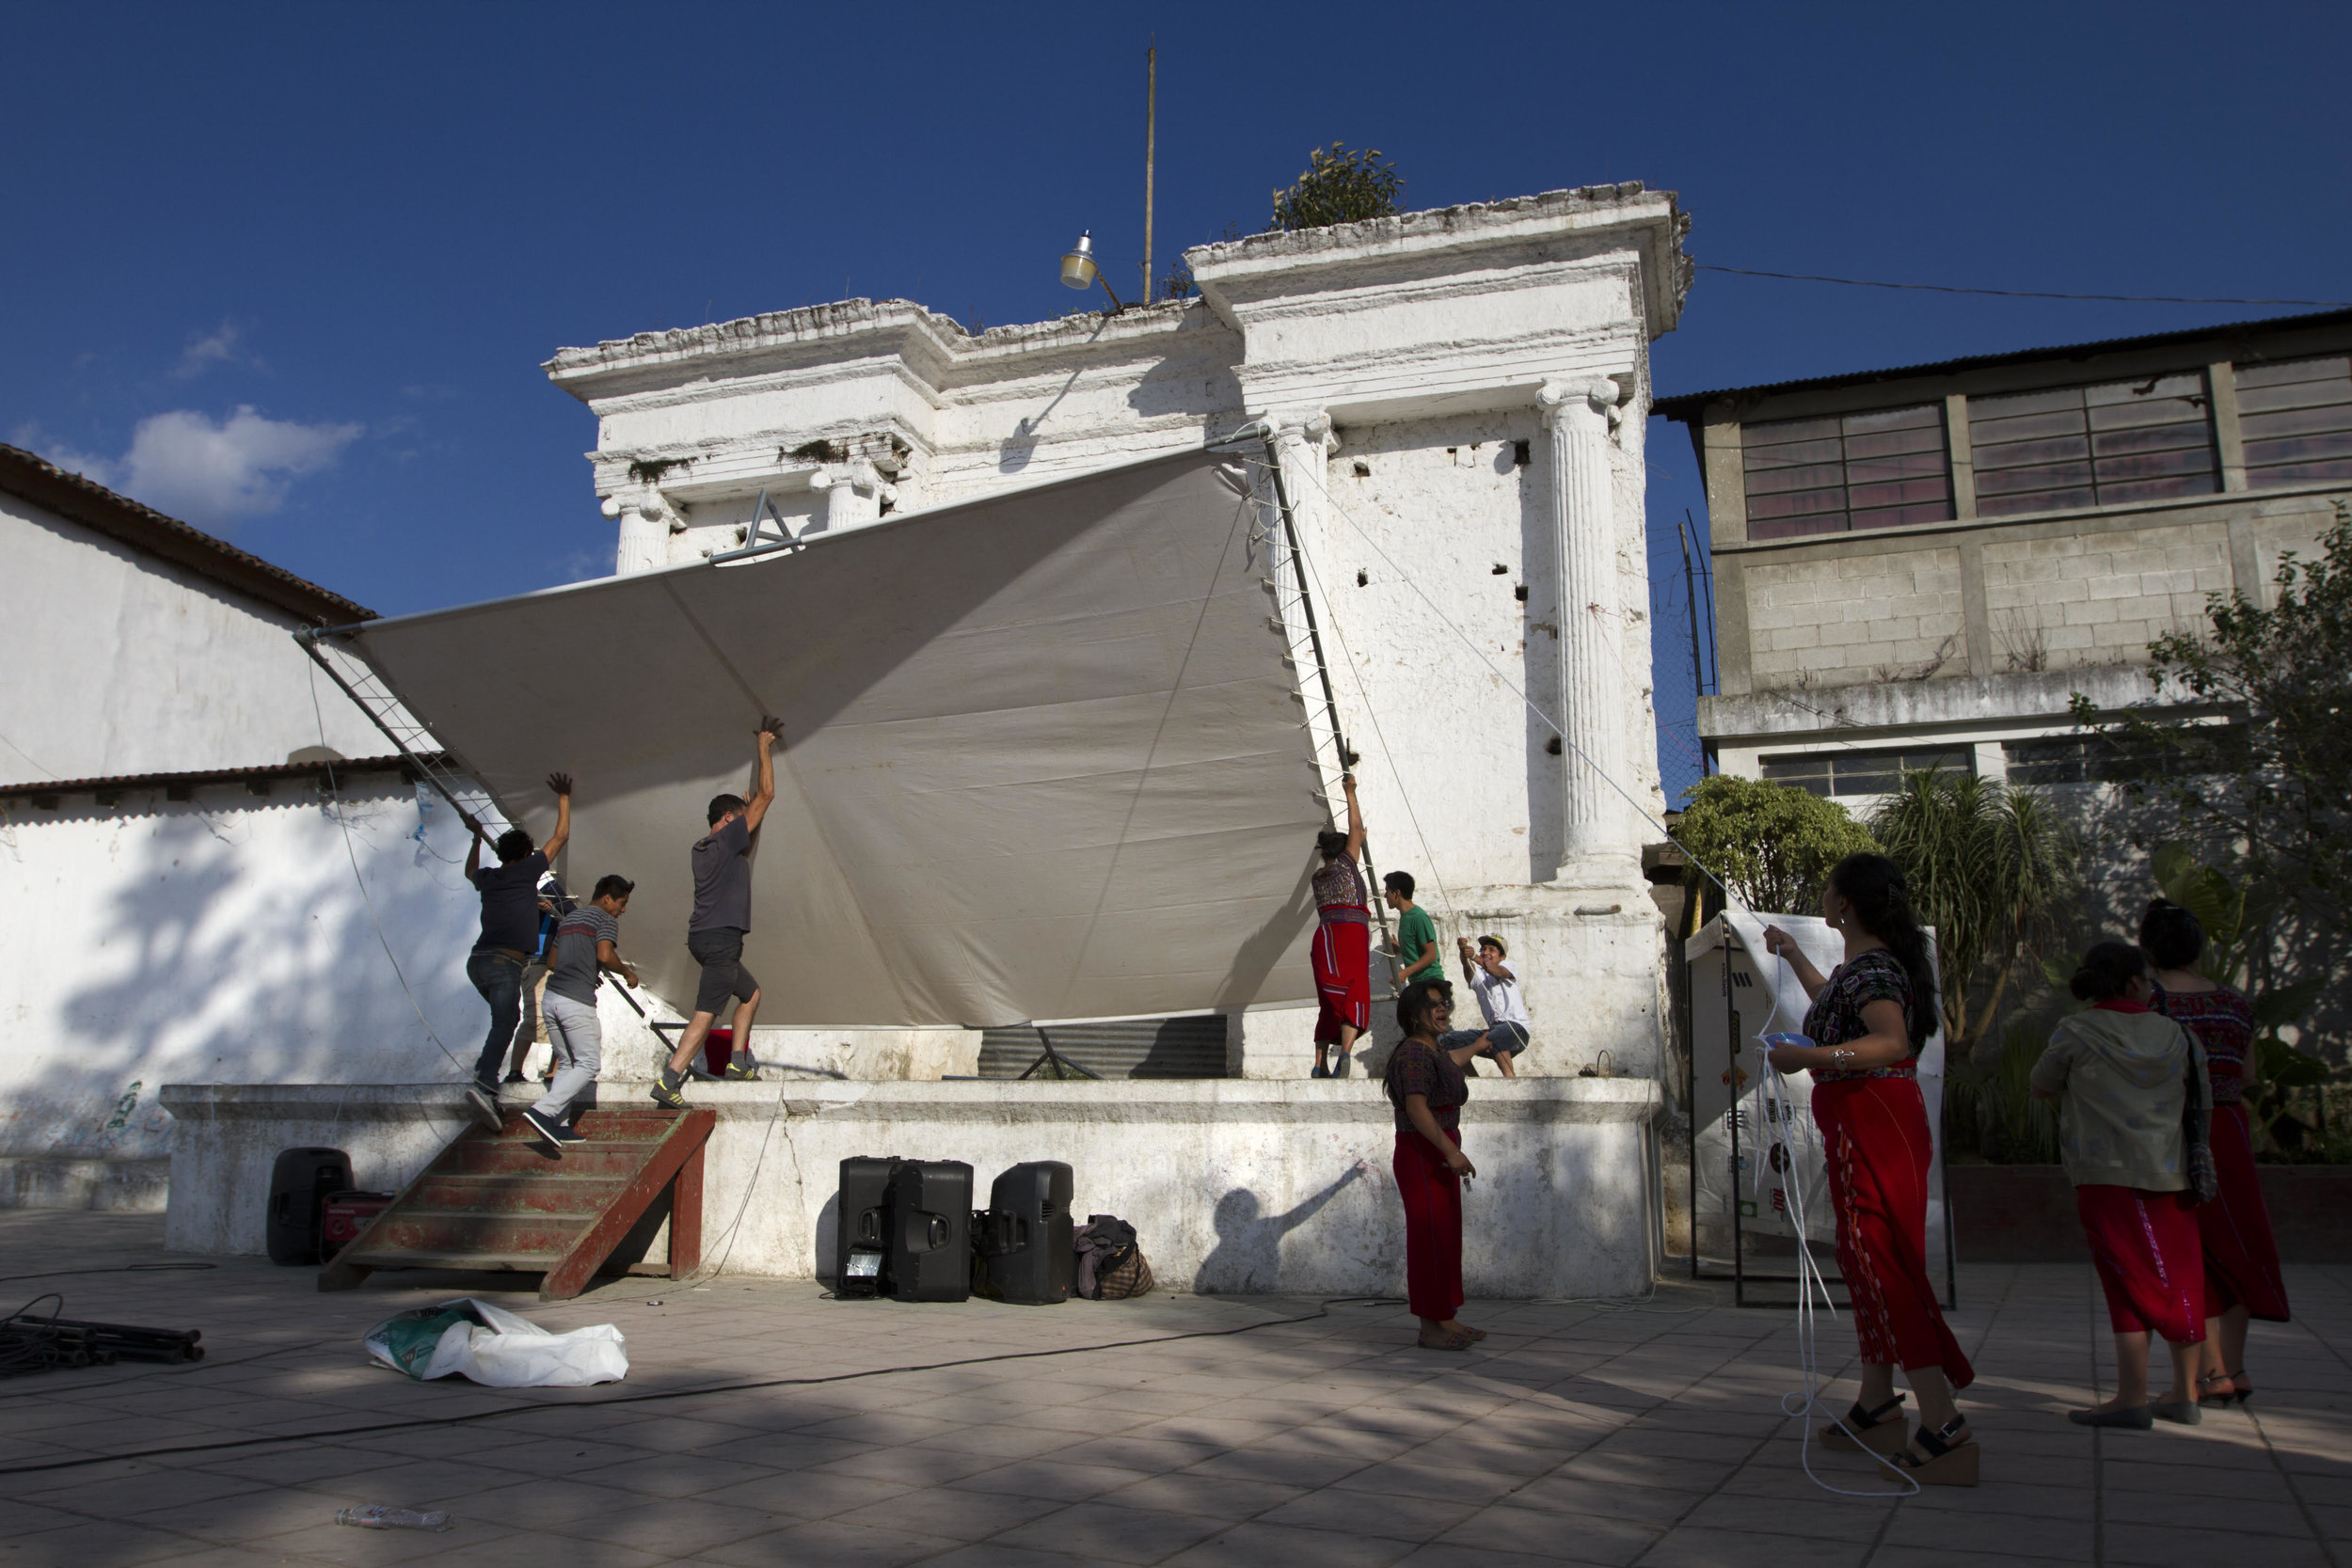 Putting  up the outdoor screen for the premiere of  Granito: How to Nail a Dictator  in Nebaj, Guatemala. The film was translated into Mayan Ixil by a translation team and recorded in the local radio station. The Mayan Ixiles were a target of General Ríos Montt's genocide in 1982. Photo by James Rodríguez.